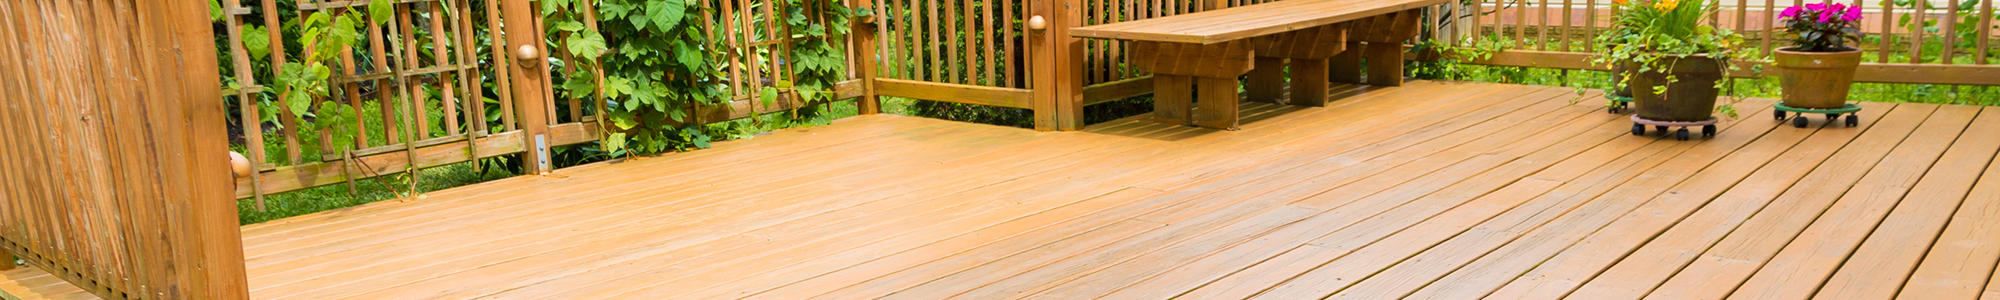 Deck & Wood Care